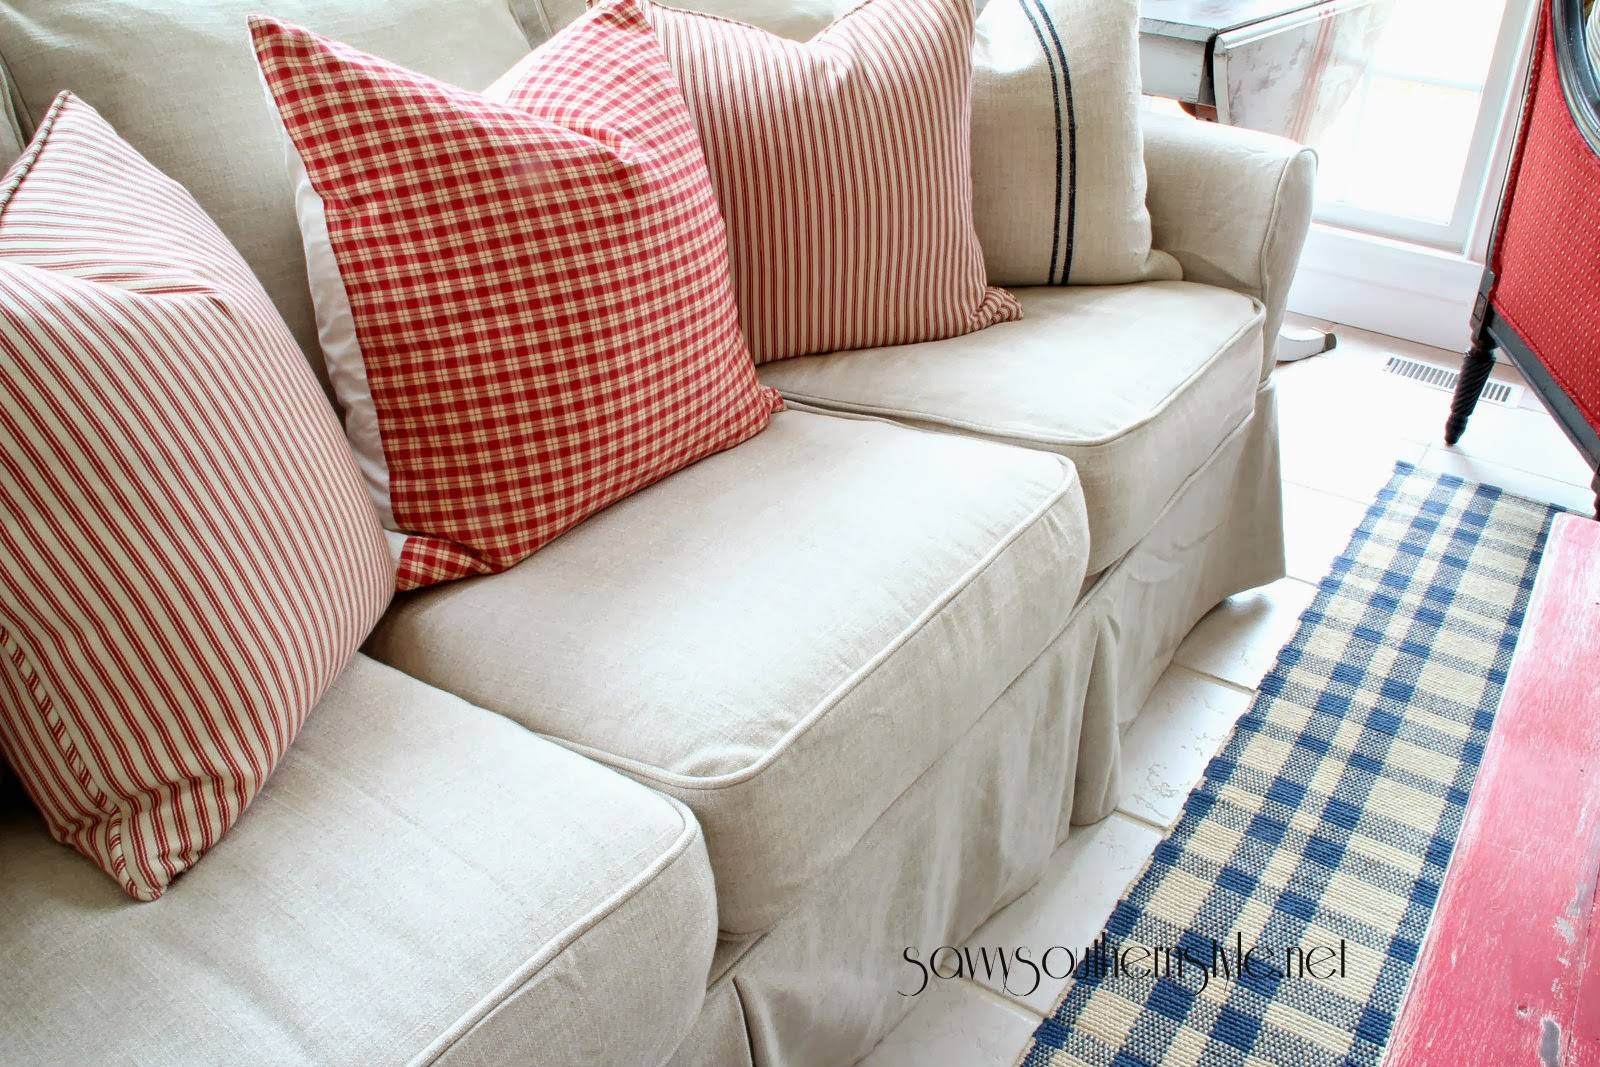 Custom Slipcovers And Couch Cover For Any Sofa Online with regard to Slipcover Style Sofas (Image 6 of 15)